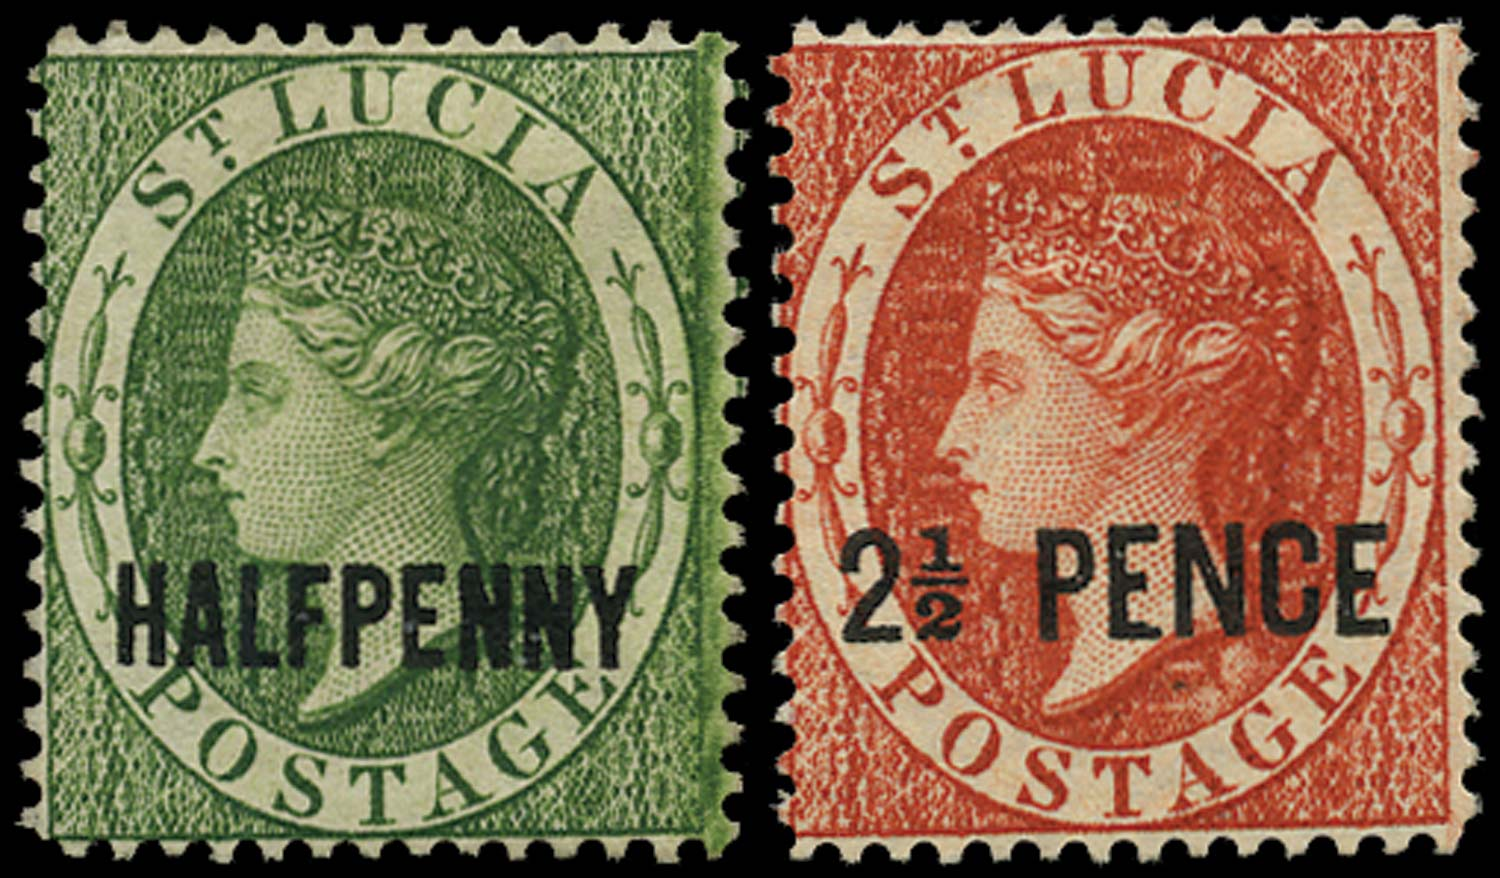 ST LUCIA 1881  SG23, 24 Mint HALFPENNY green, 2½ PENCE brown-red